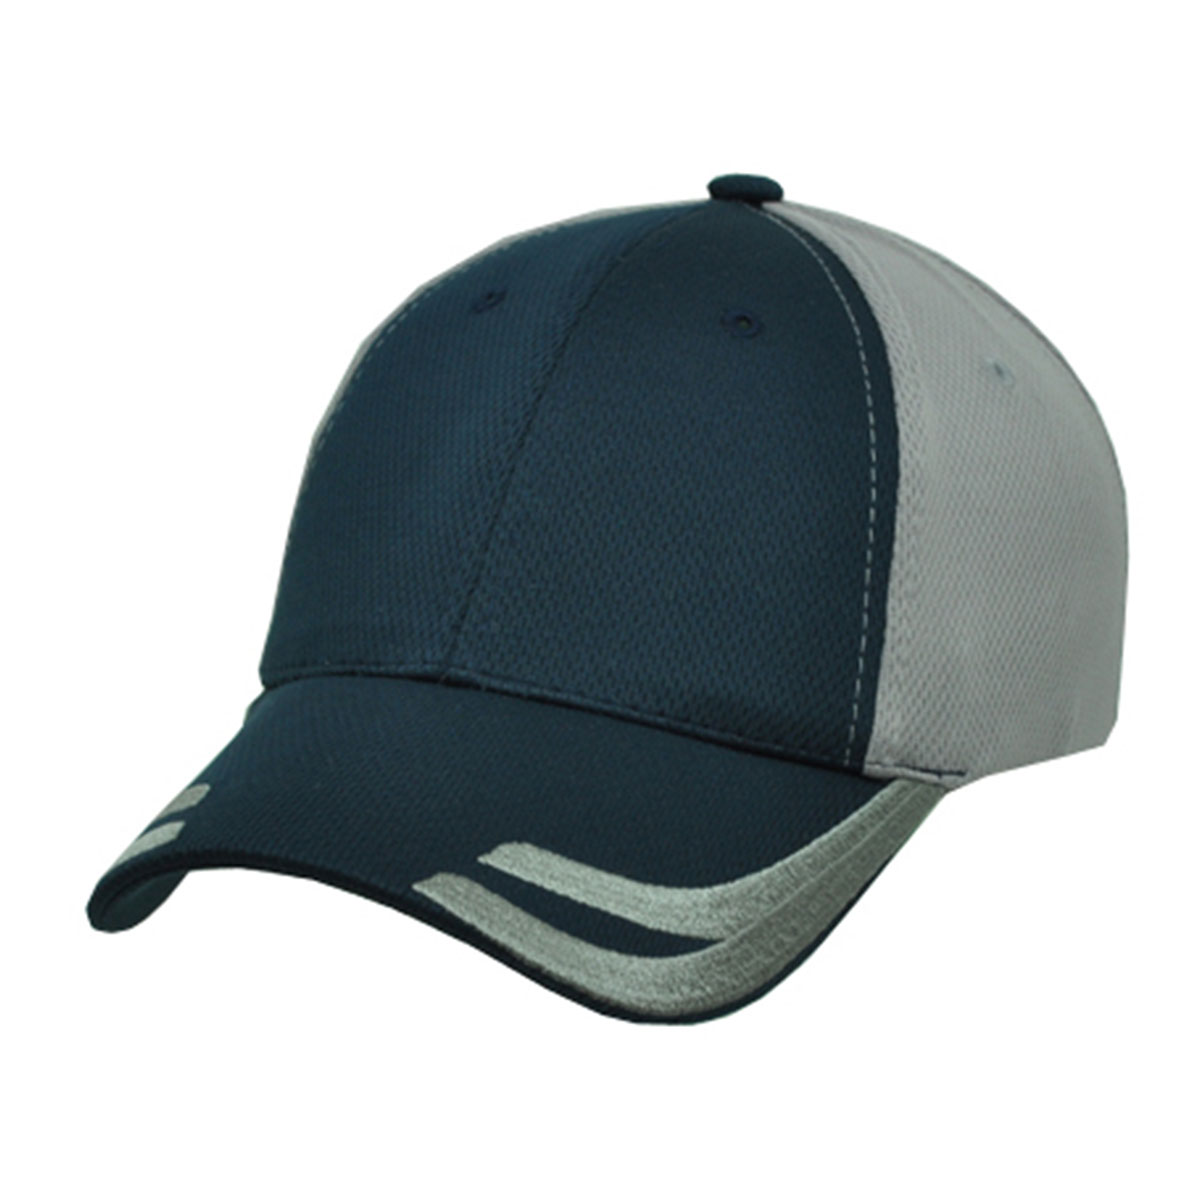 Tiburon Cap-Navy / Dark Grey